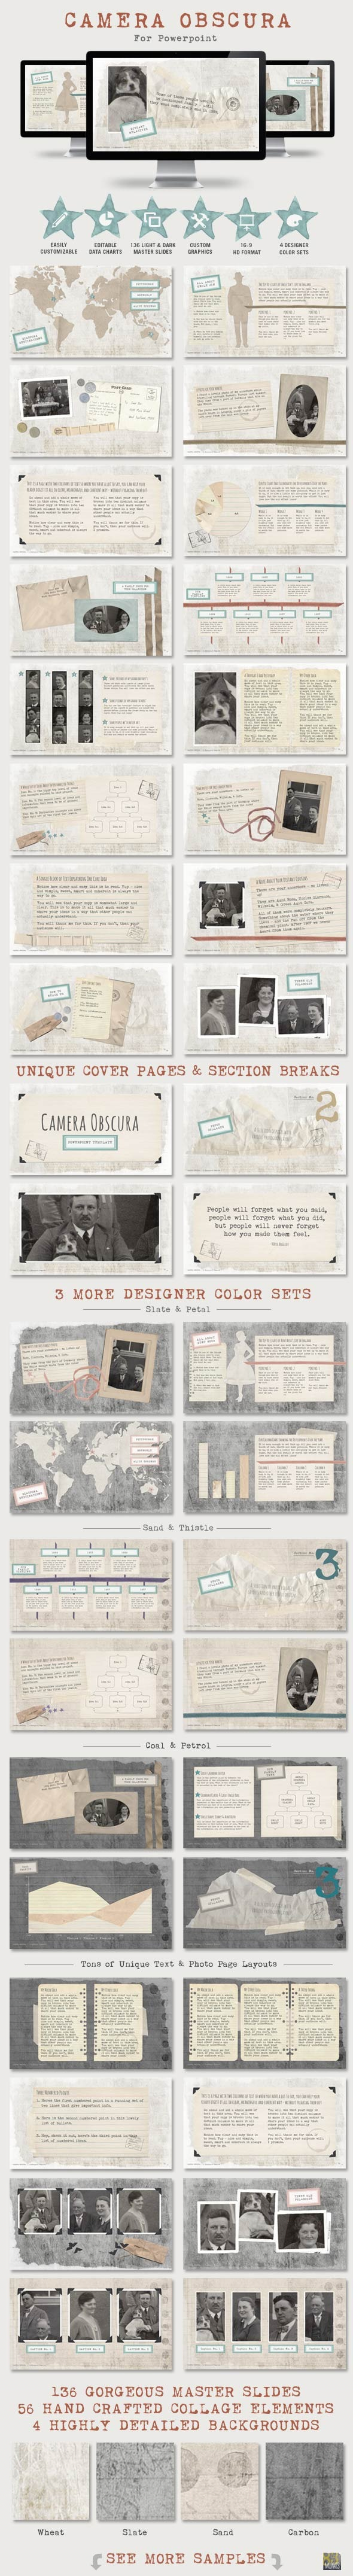 GraphicRiver Camera Obscura Powerpoint Presentation Template 8968268